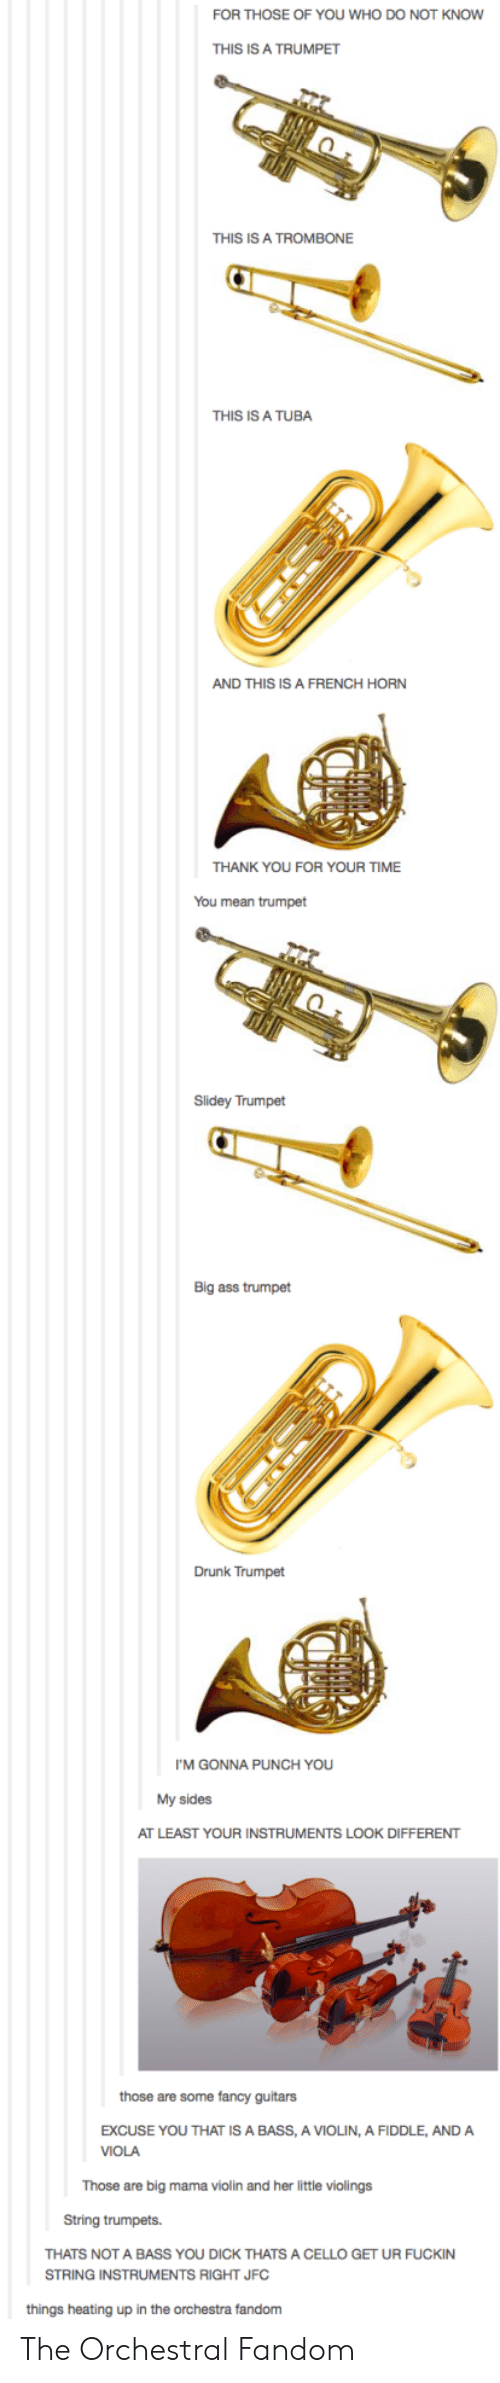 My Sides: FOR THOSE OF YOU WHO DO NOT KNOW  THIS IS A TRUMPET  THIS IS A TROMBONE  THIS IS A TUBA  AND THIS IS A FRENCH HORN  THANK YOU FOR YOUR TIME  You mean trumpet  Slidey Trumpet  Big ass trumpet  Drunk Trumpet  'M GONNA PUNCH YOU  My sides  AT LEAST YOUR INSTRUMENTS LOOK DIFFERENT  those are some fancy guitars  EXCUSE YOU THAT IS A BASS, A VIOLIN, A FIDDLE, AND A  VIOLA  Those are big mama violin and her little violings  String trumpets.  THATS NOT A BASS YOU DICK THATS A CELLO GET UR FUCKIN  STRING INSTRUMENTS RIGHT JFC  things heating up in the orchestra fandom The Orchestral Fandom